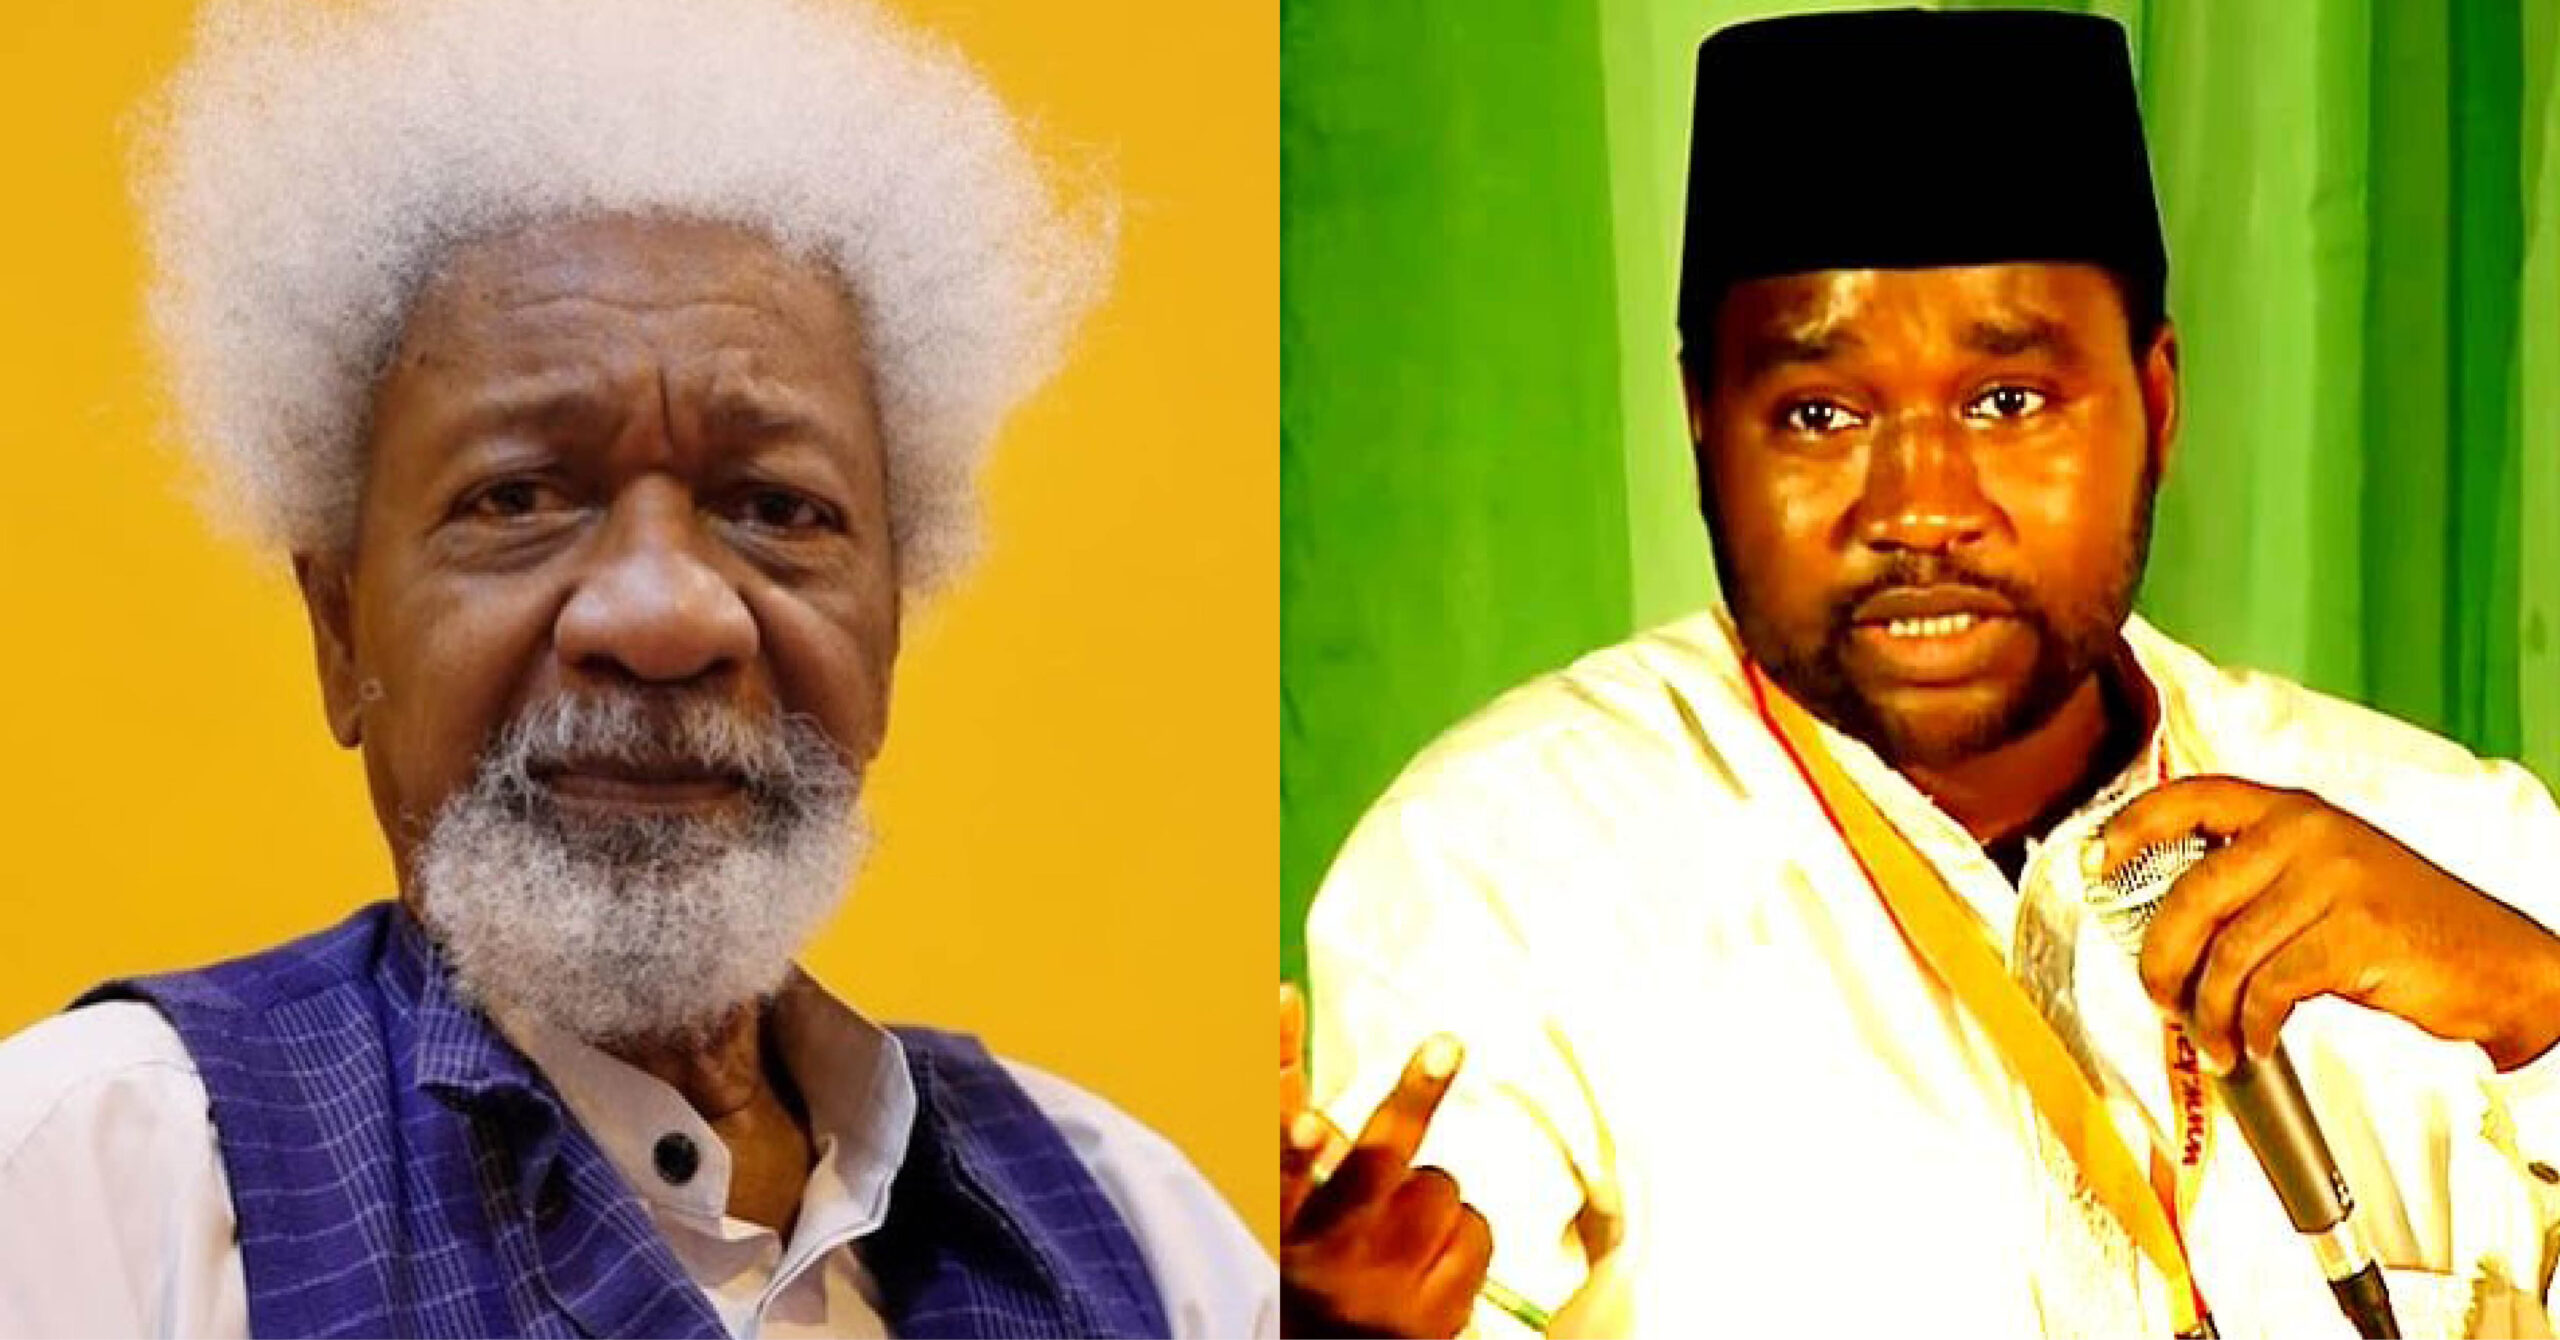 Nobel Laureate, Wole Soyinka, sends message of solidarity to Mubarak Bala, detained for 100 days